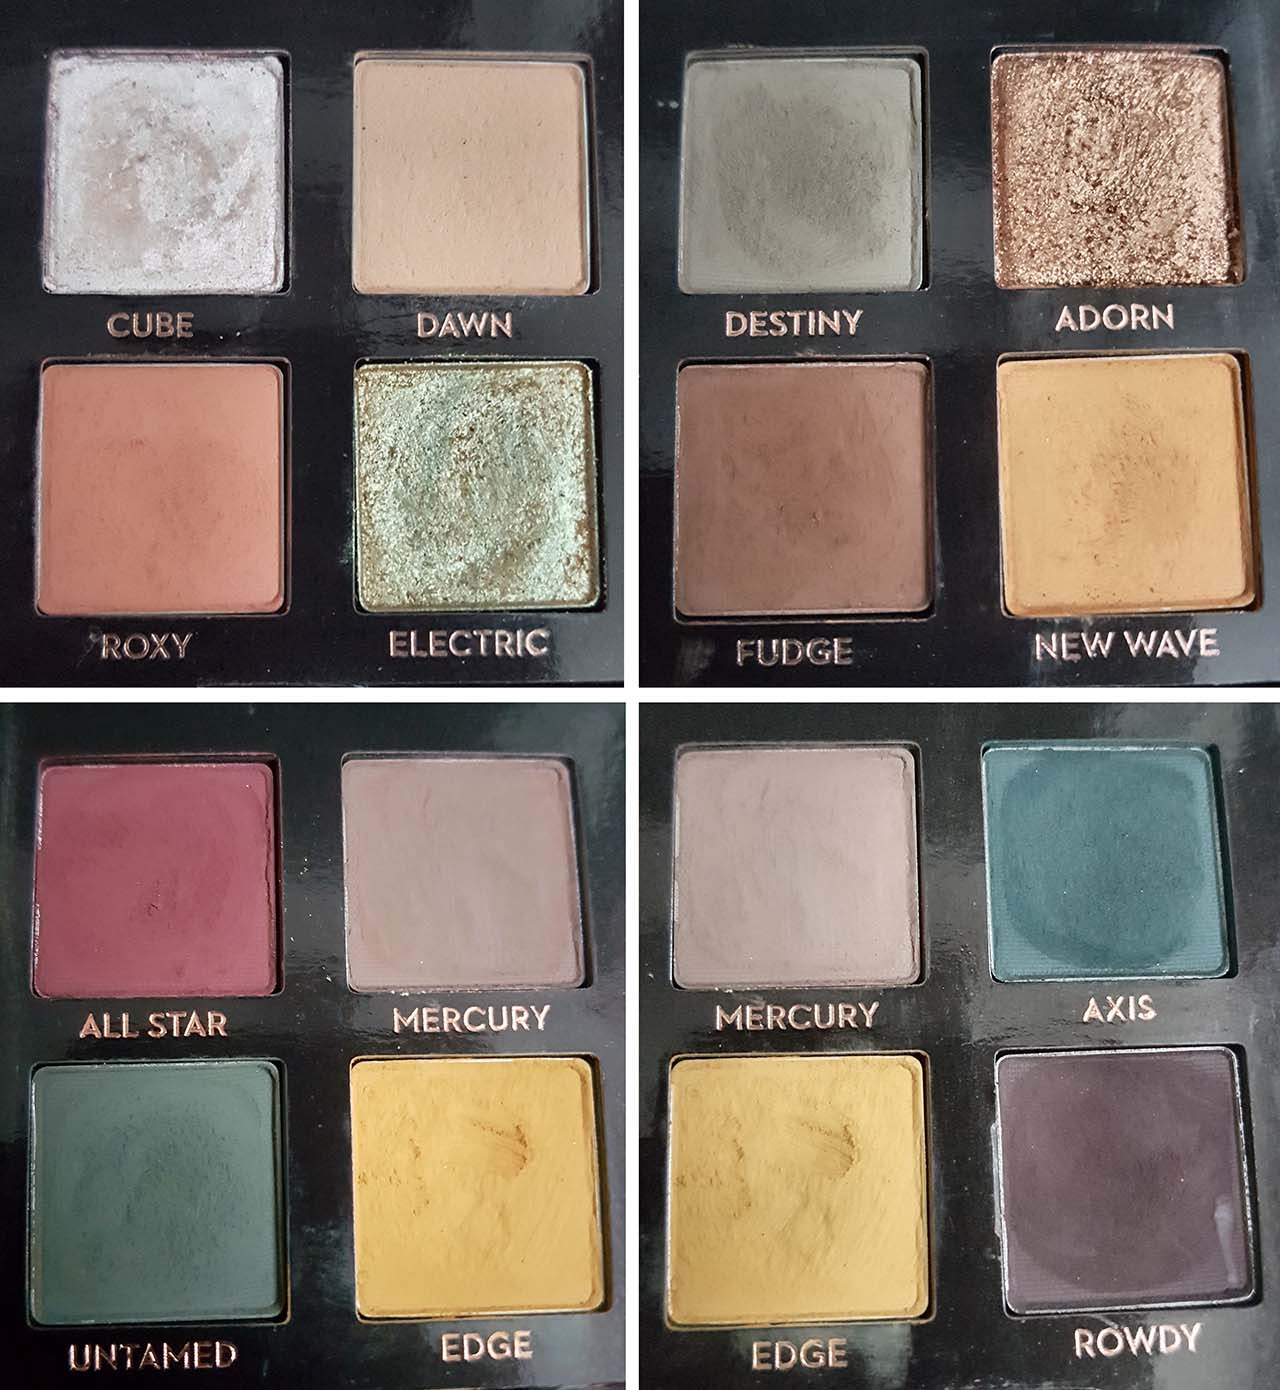 The Subculture Palette by ABH – Why All The Controversy: There are 14 eyeshadows in total, 11 are ultra-matte (Dawn, Roxy, Destiny, Fudge, New Wave, All Star, Mercury, Untamed, Edge, Axis and Rowdy), 2 are duo chrome (Cube and Electric) and 1 is a metallic glitter (Adorn)